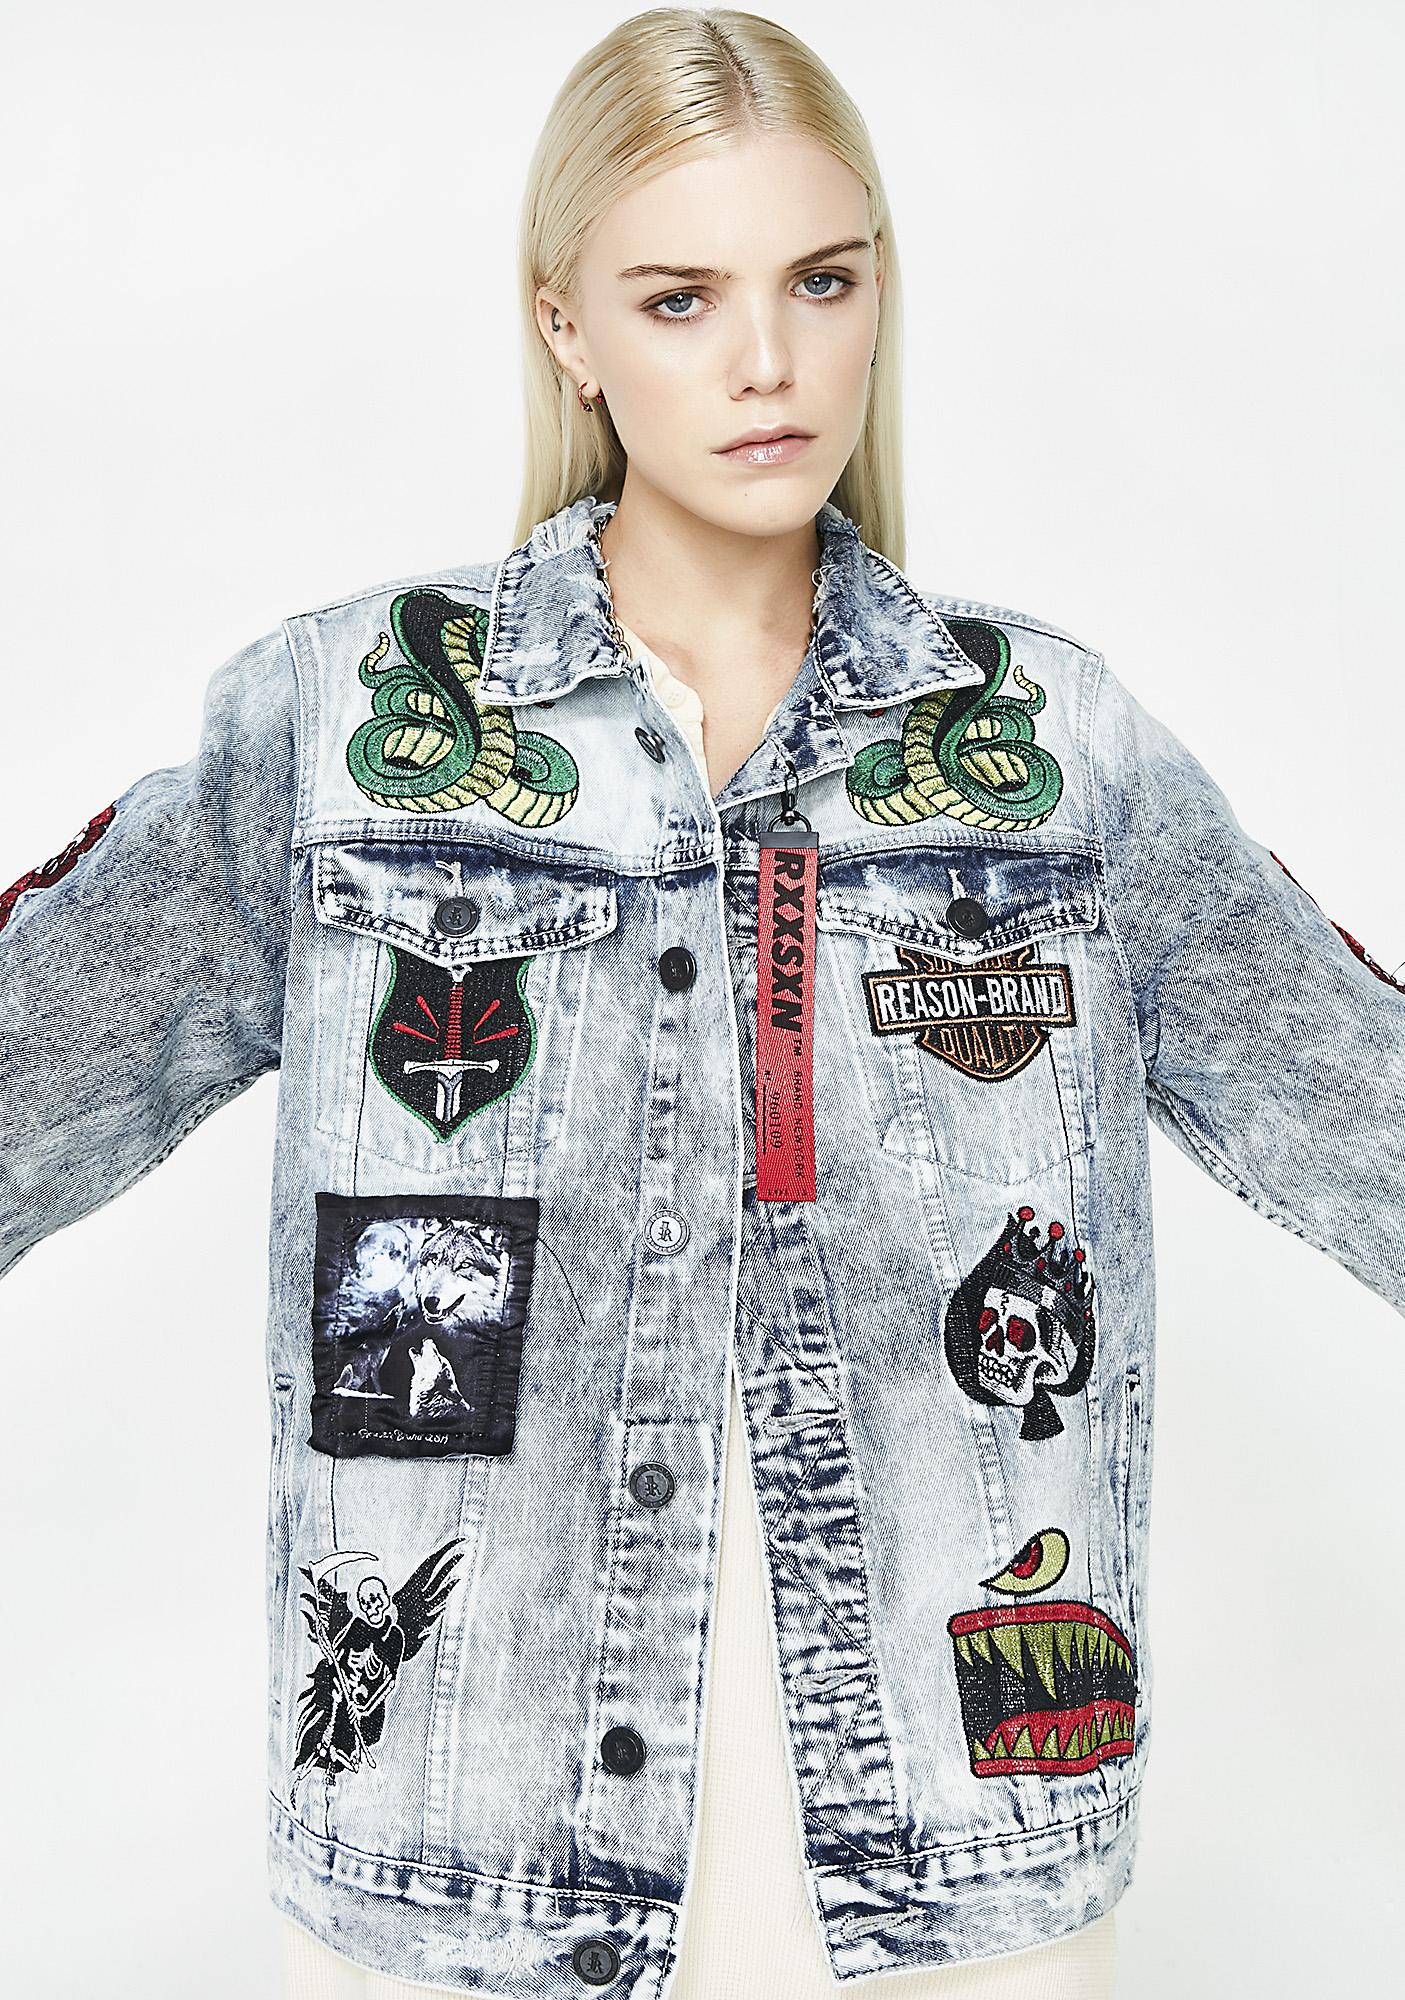 Rock Tour Denim Jacket by Reason